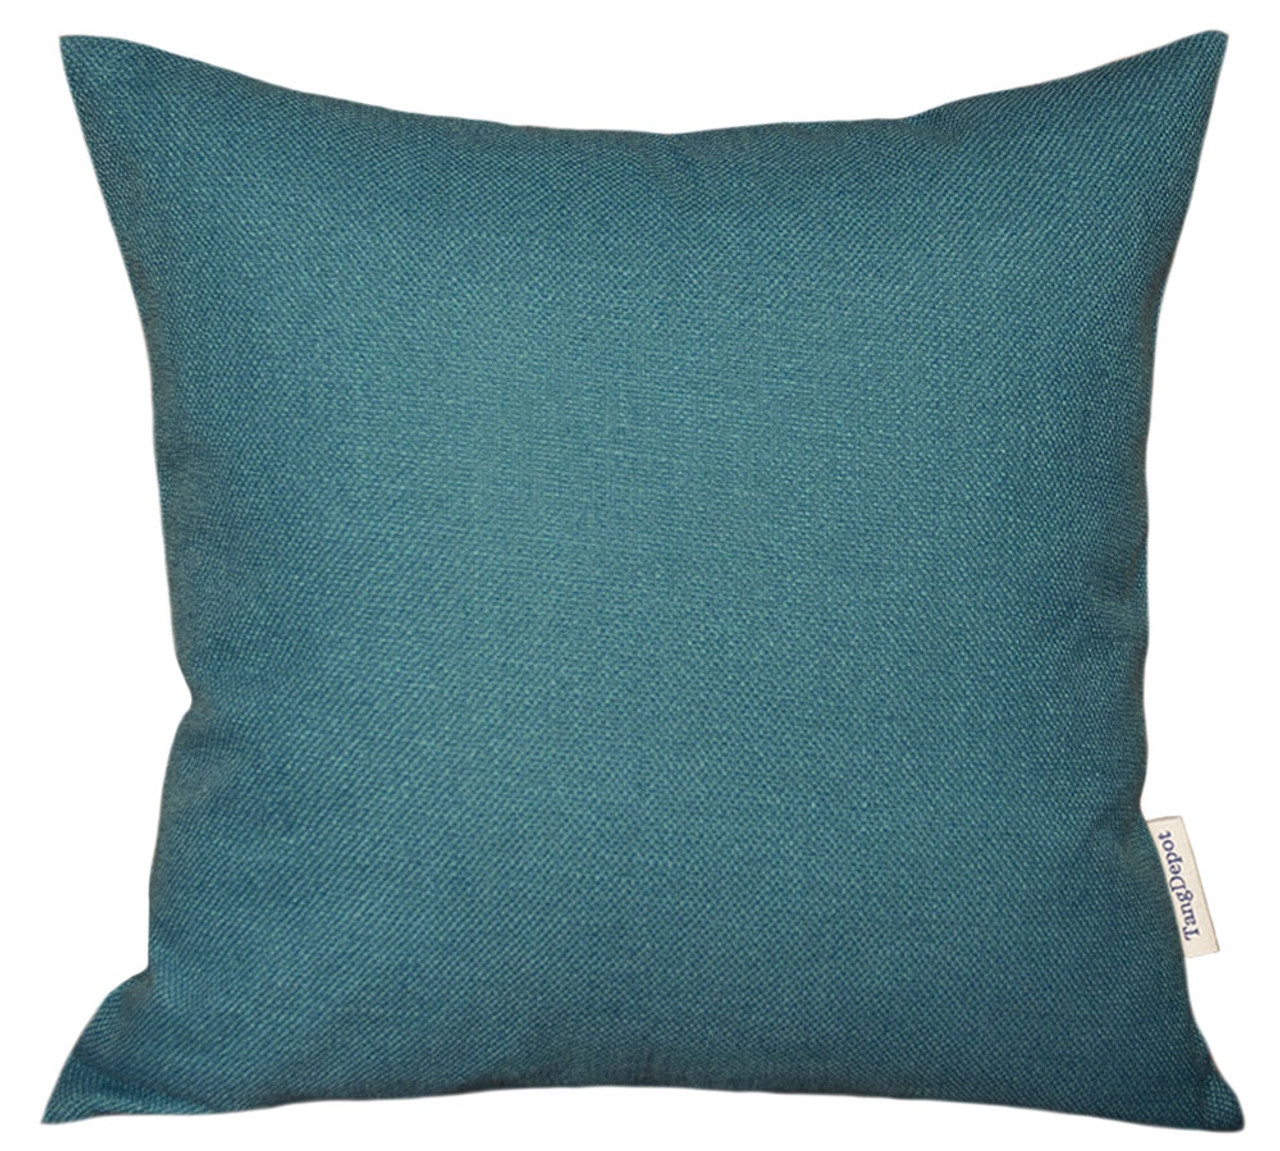 TangDepot Blend Linen Handmade Solid Decorative Throw Pillow Covers /Pillow Shams, Thick and Soft